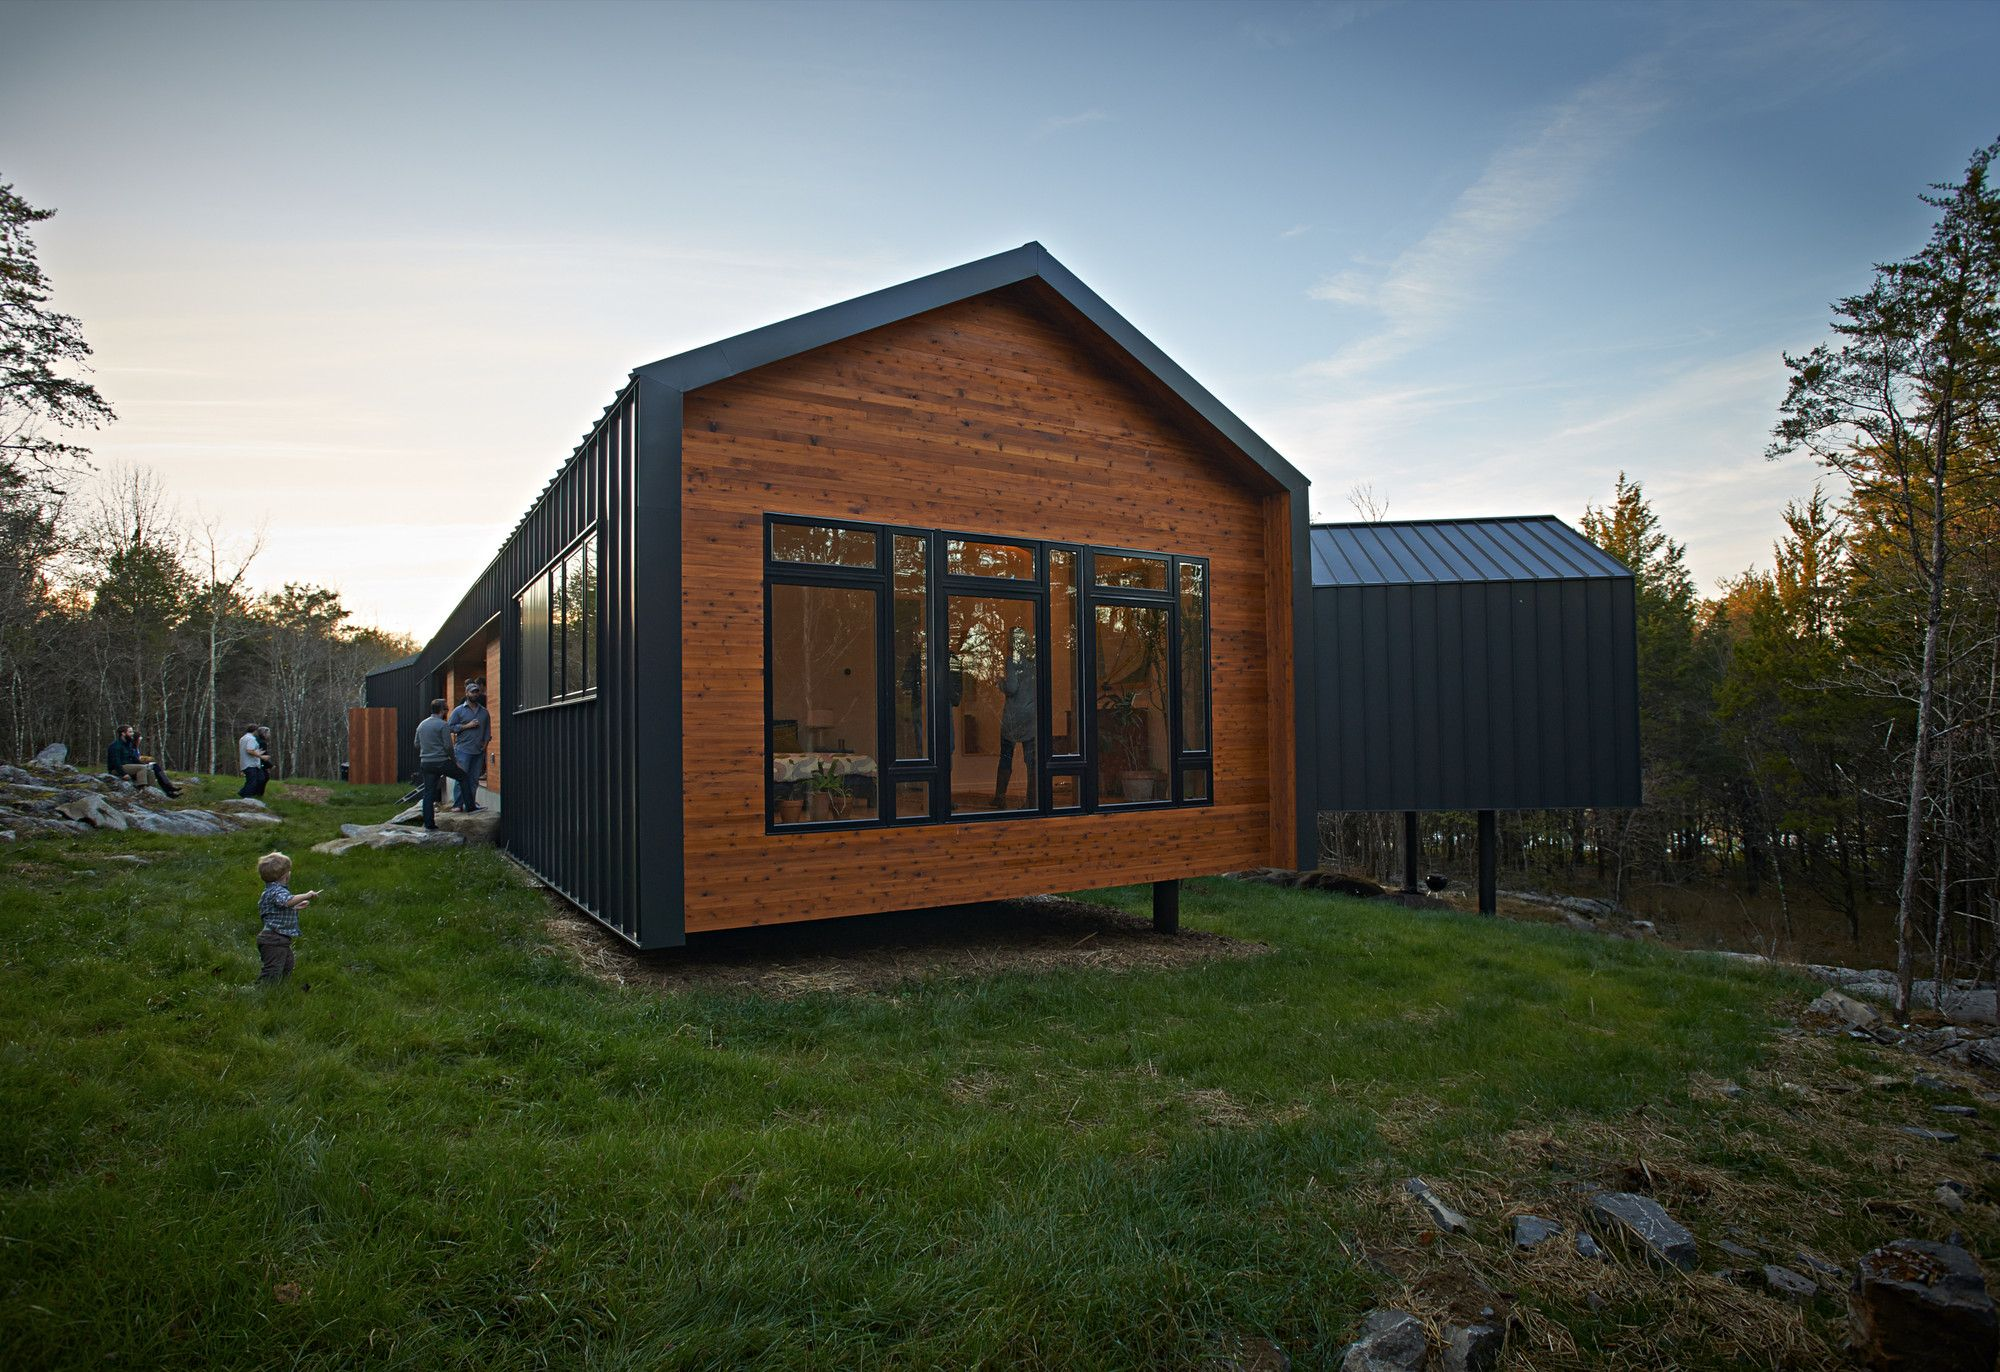 Image 8 of 15 from gallery of Holston River House / Sanders Pace Architecture. Photograph by Bruce Cole Photography